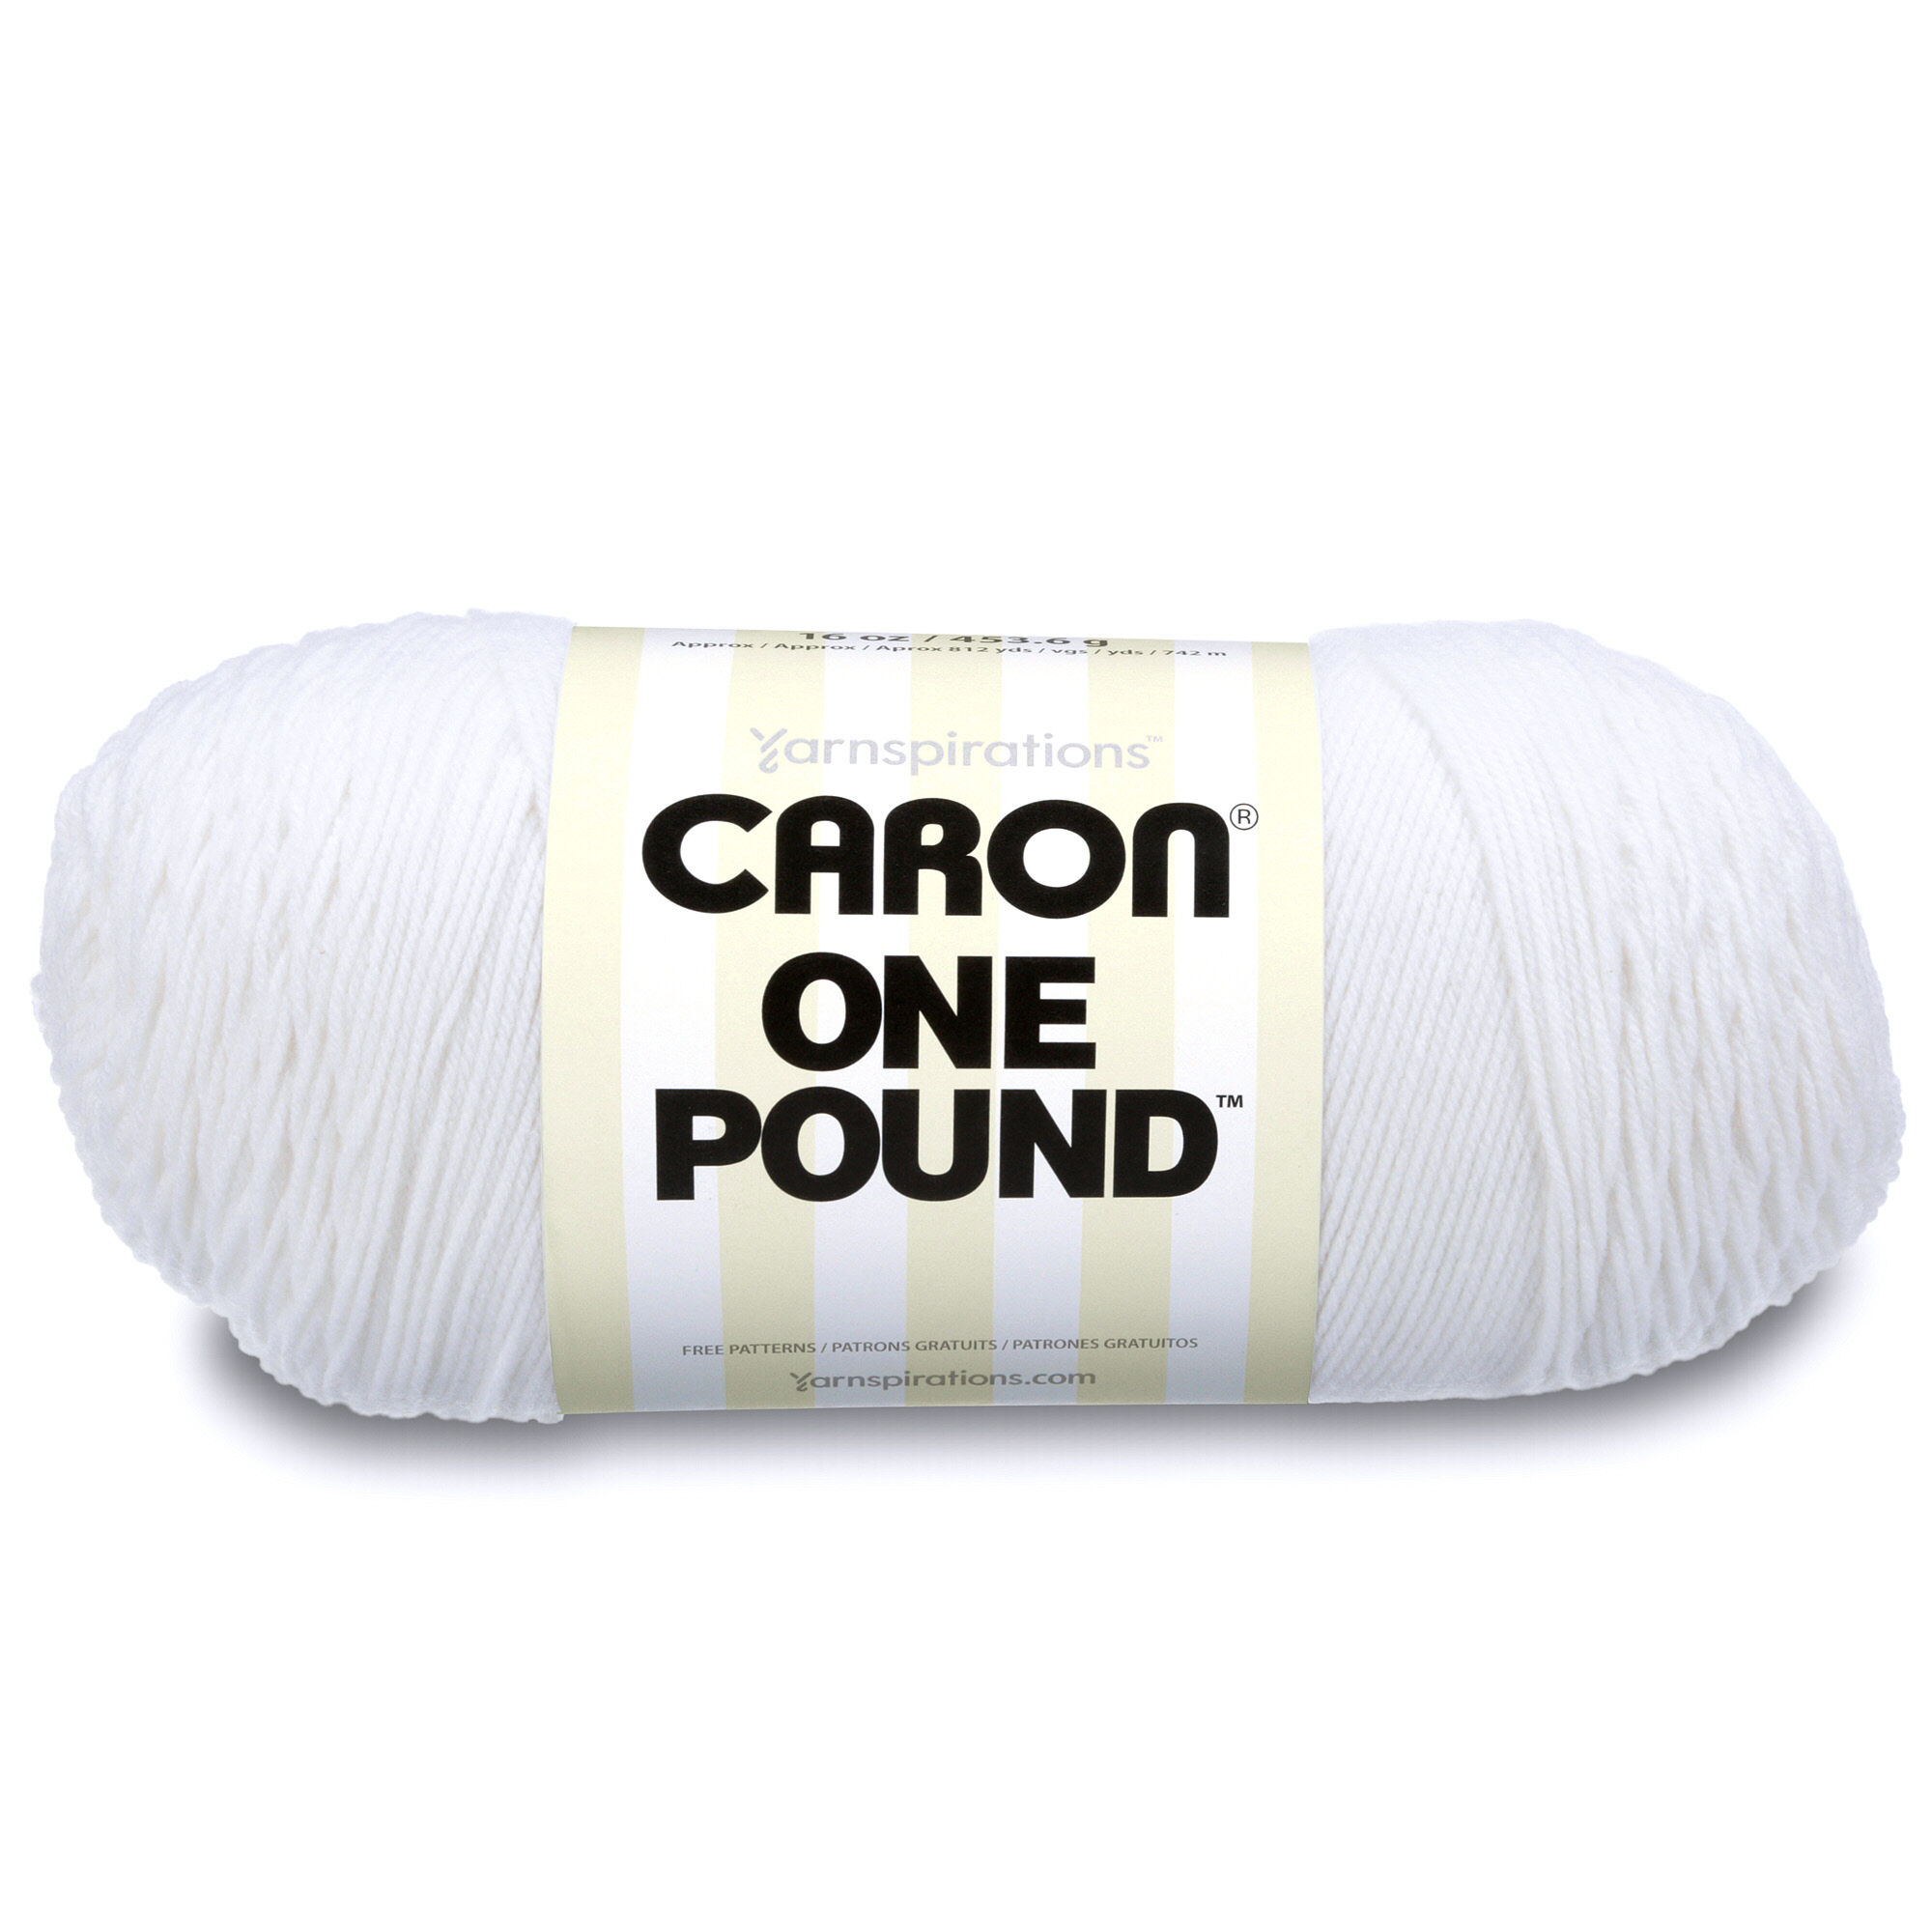 LION Brand FUN YARN 5 color choices  #4 washable~ buy 2 and save 50gram ball